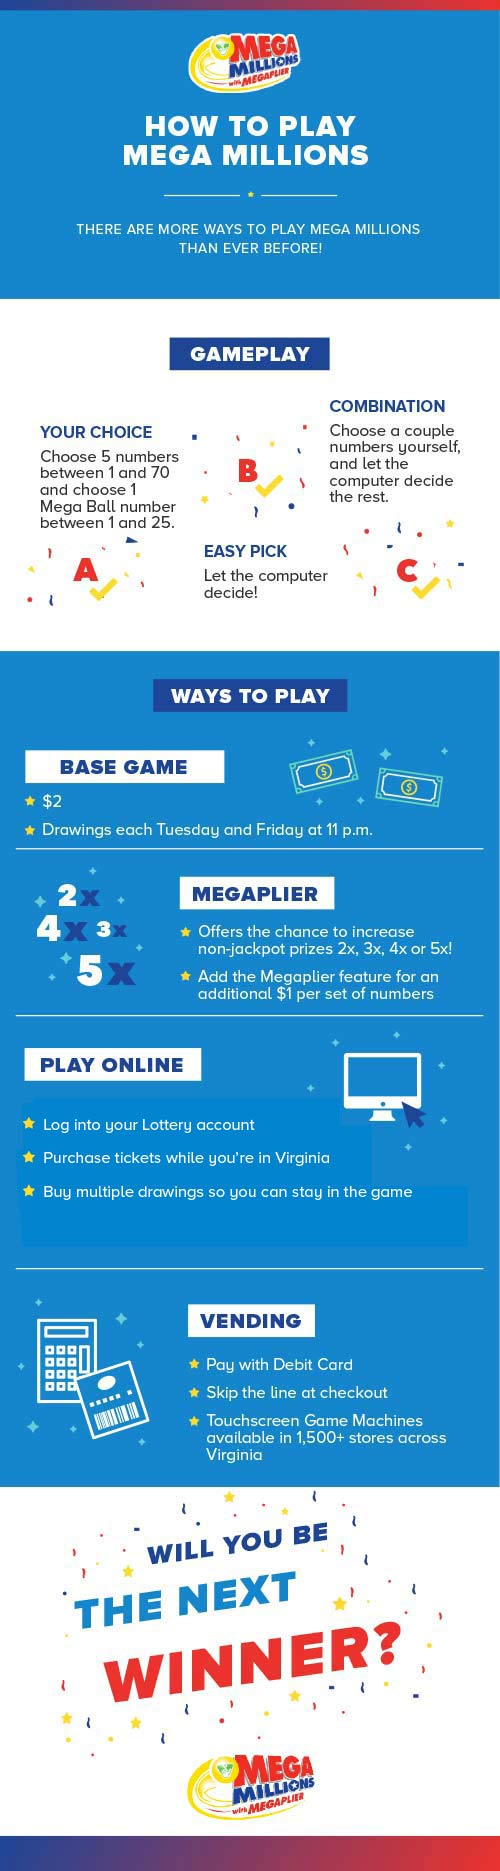 How to Play Mega Millions | Virginia Lottery Blog